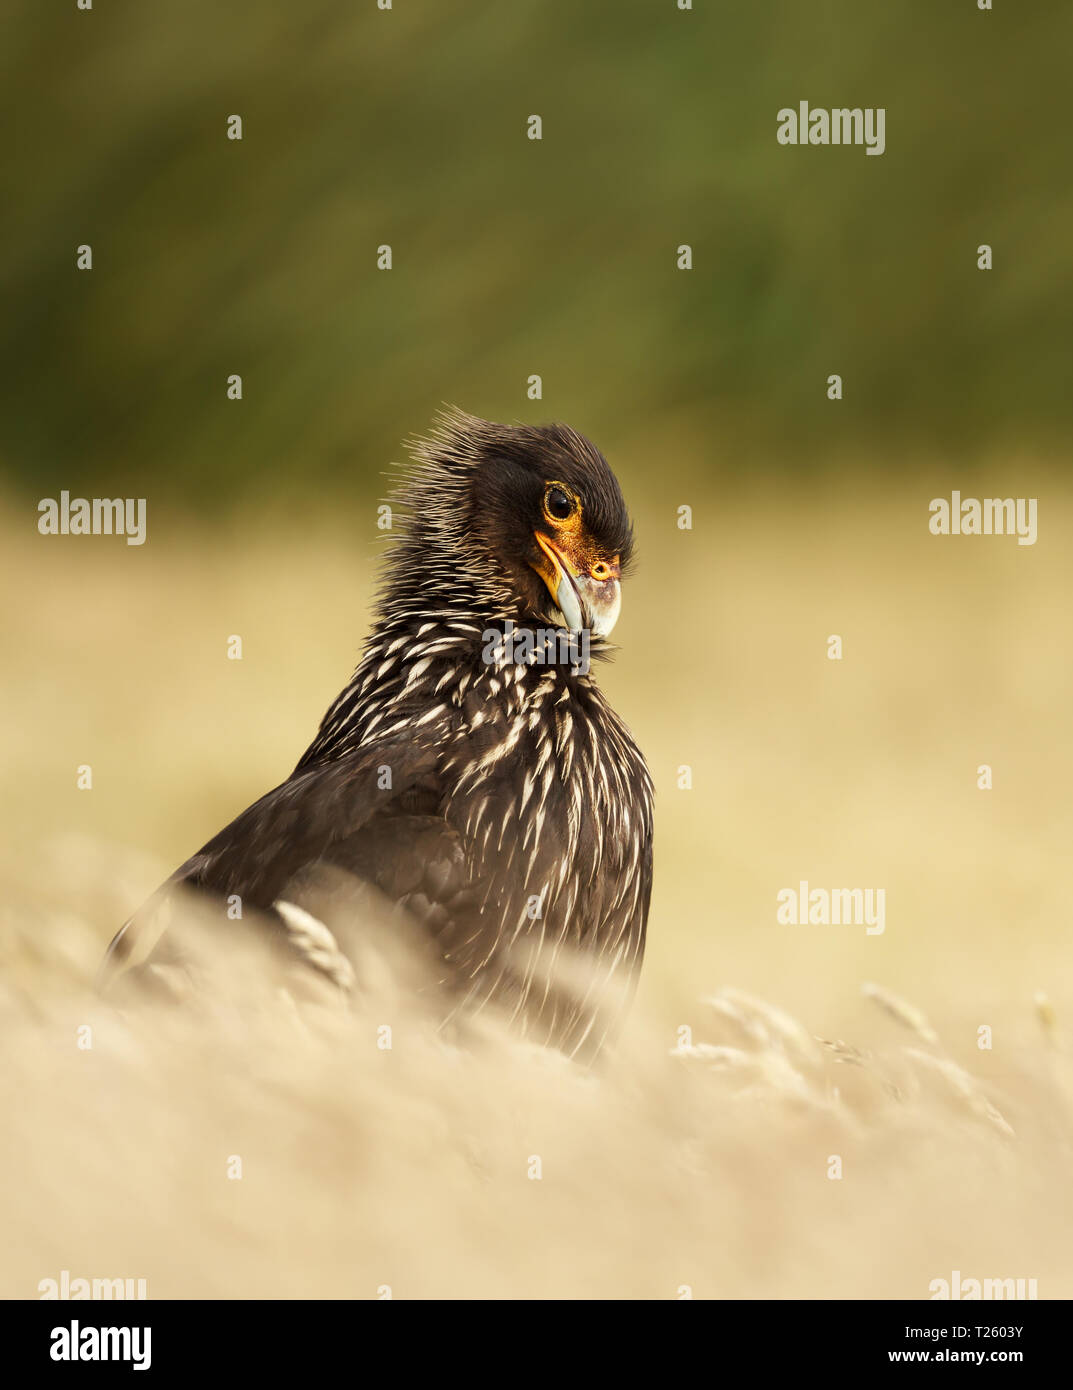 Close-up of Striated Caracara (Phalcoboenus australis) against green background, Falkland islands. Stock Photo